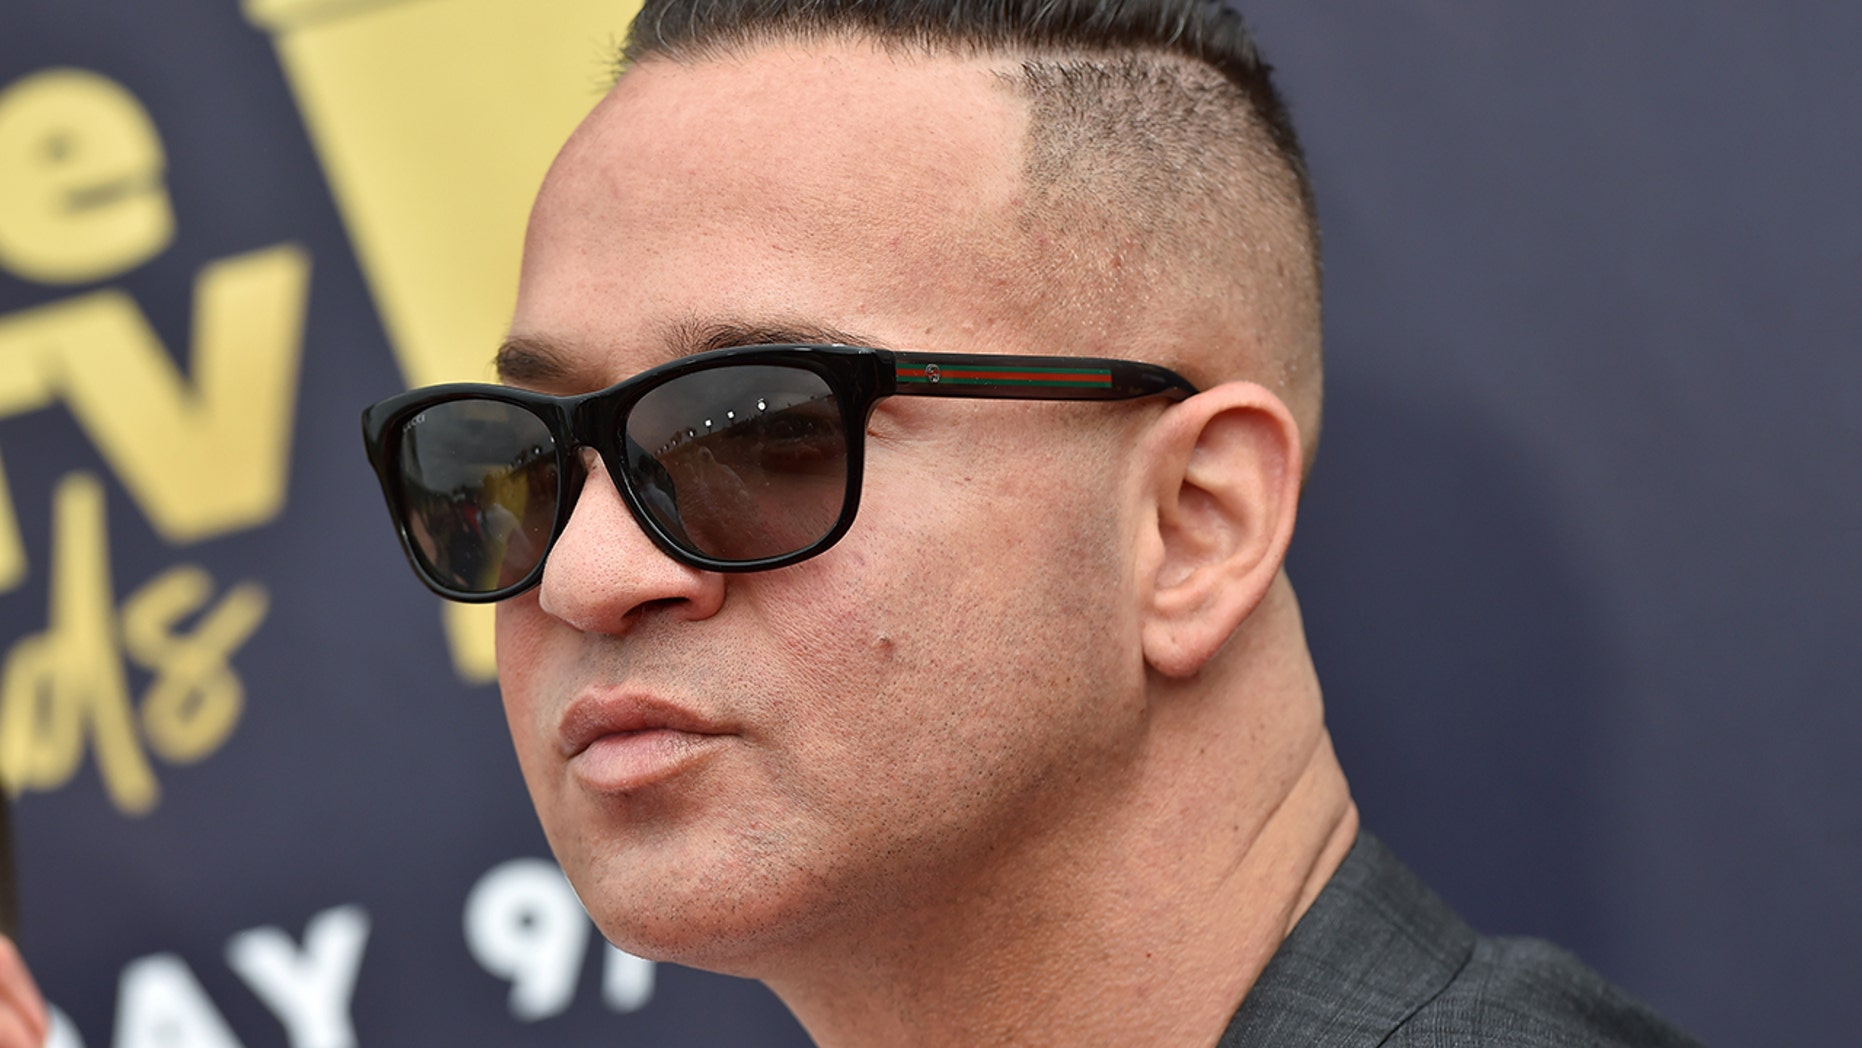 TV personality Mike Sorrentino attends the 2018 MTV Movie And TV Awards at Barker Hangar on June 16, 2018 in Santa Monica, California.